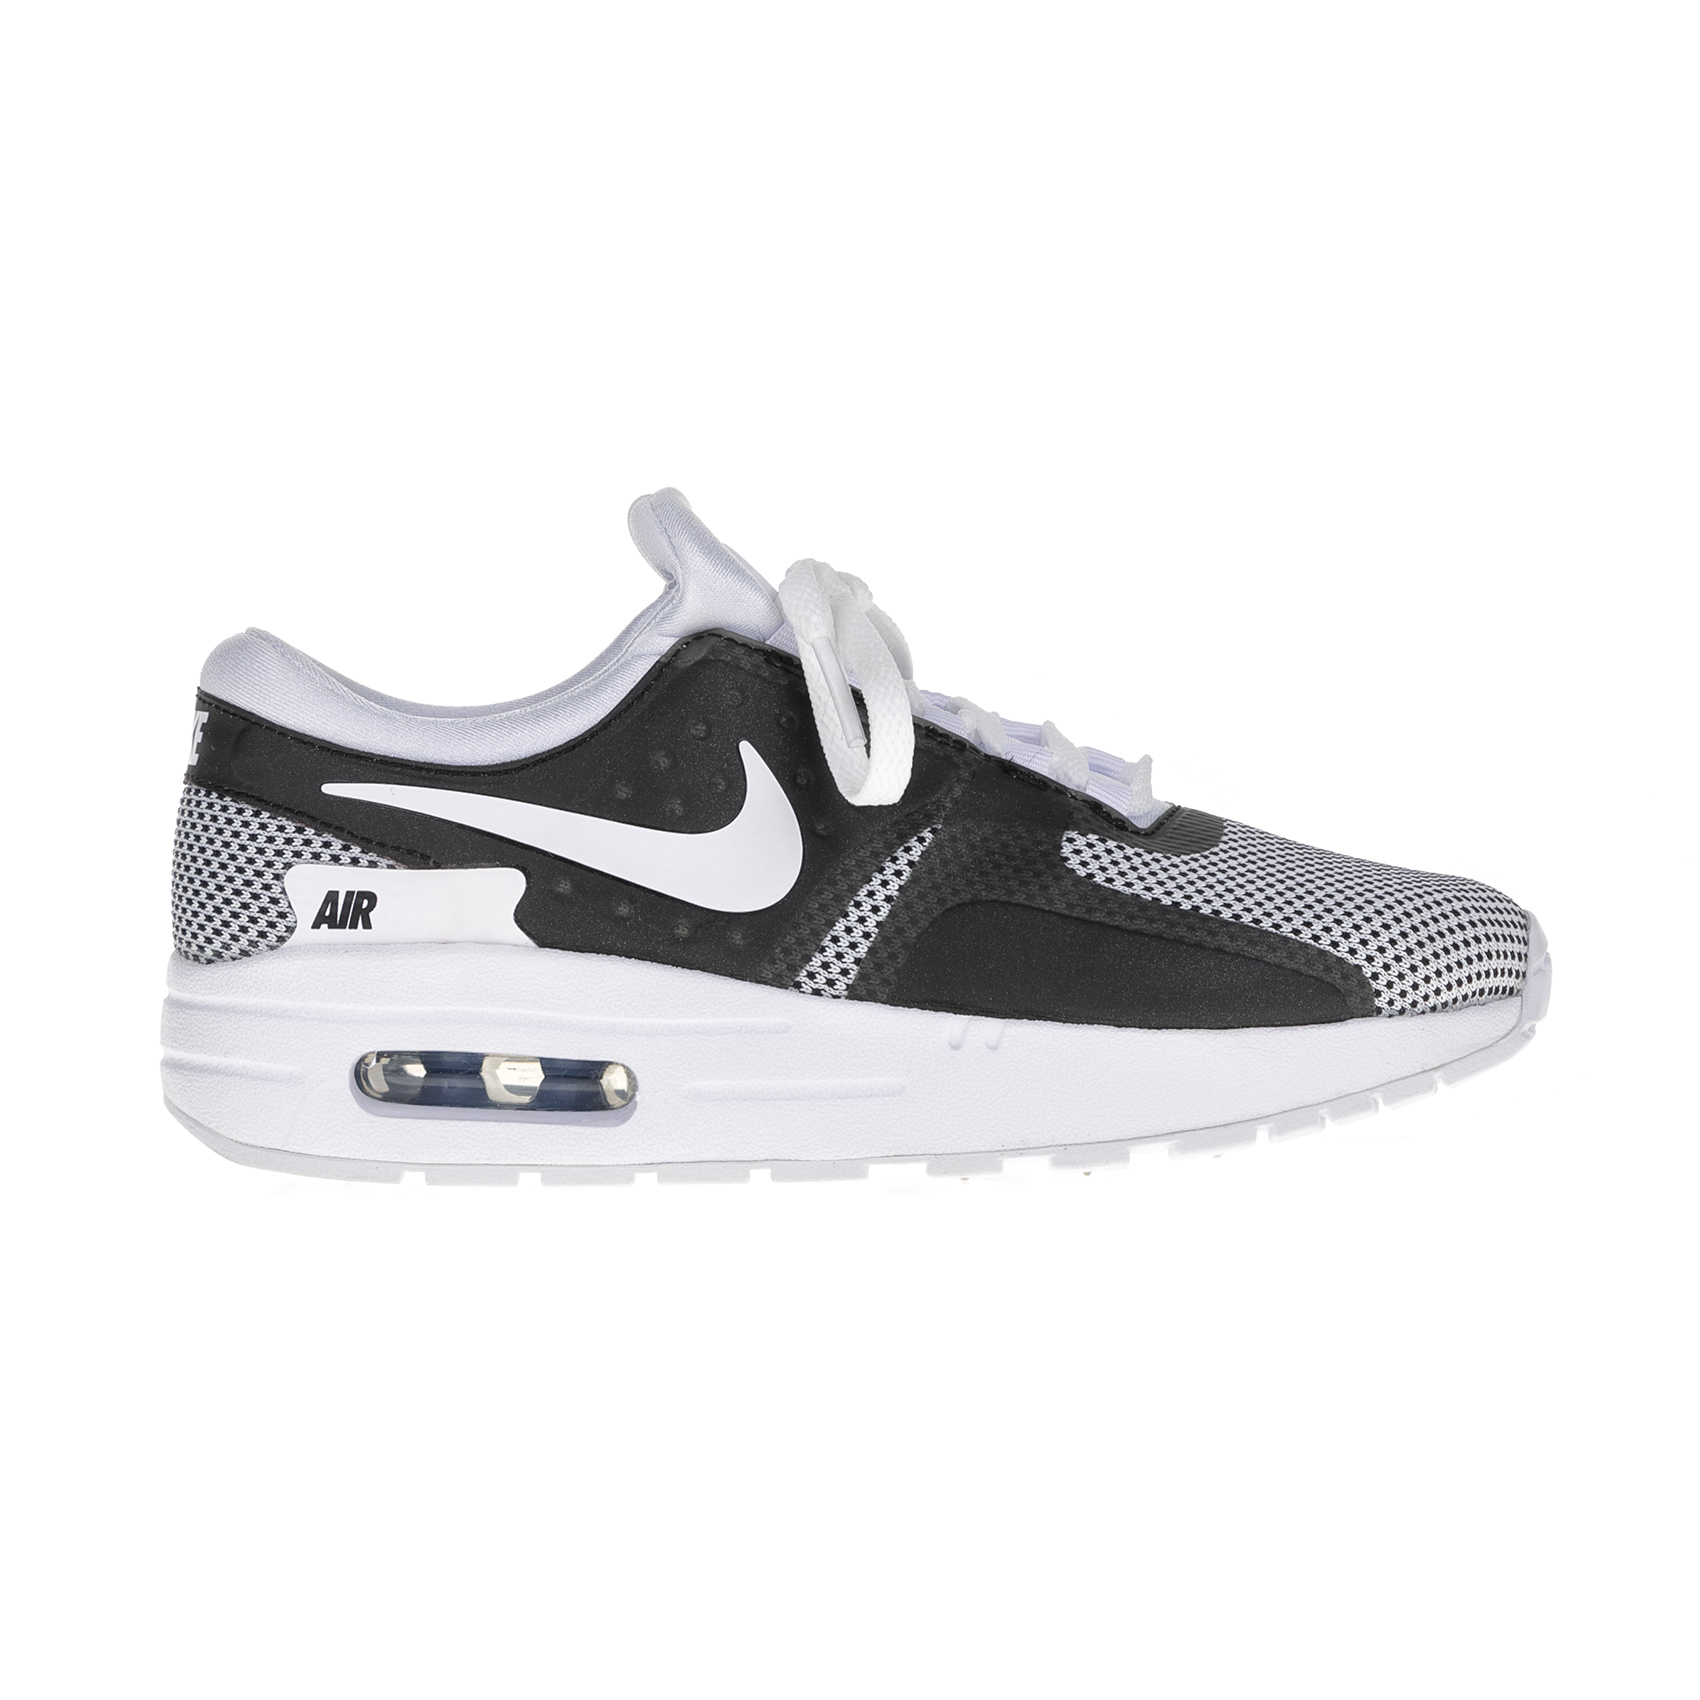 NIKE – Παιδικά αθλητικά παπούτσια Nike AIR MAX ZERO ESSENTIAL PS άσπρα – μαύρα